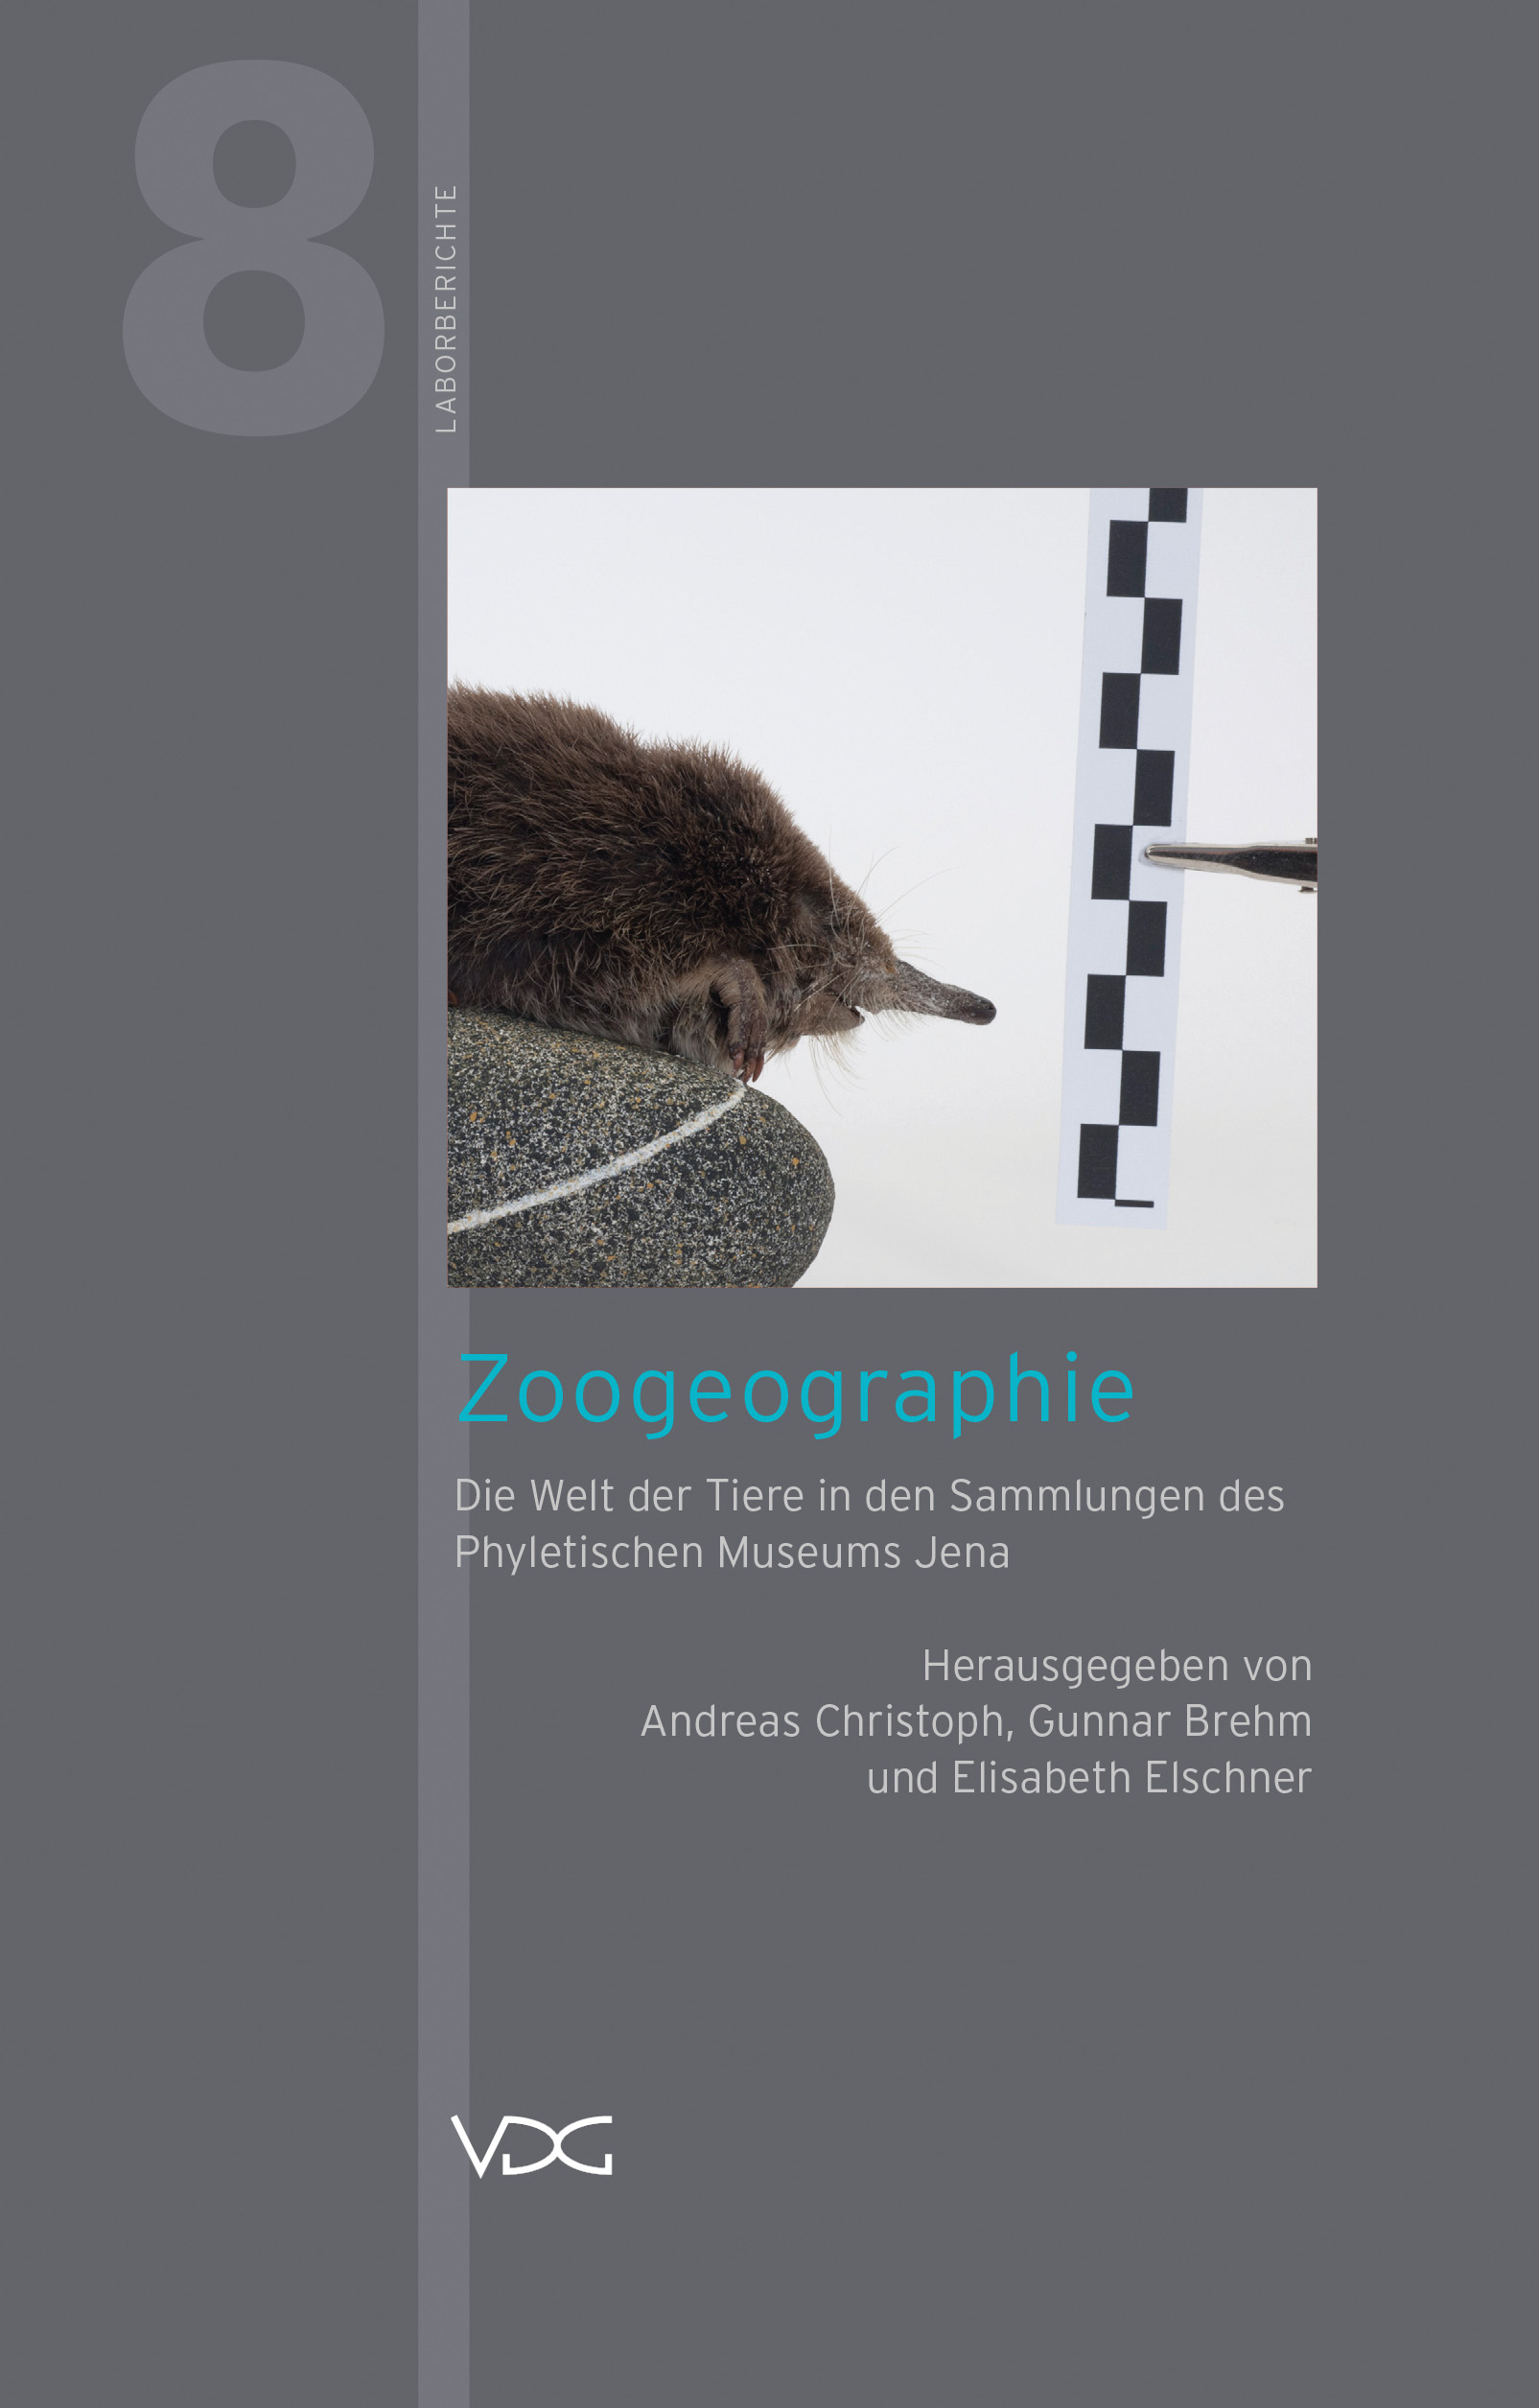 Zoogeographie © Cover VDG Weimar